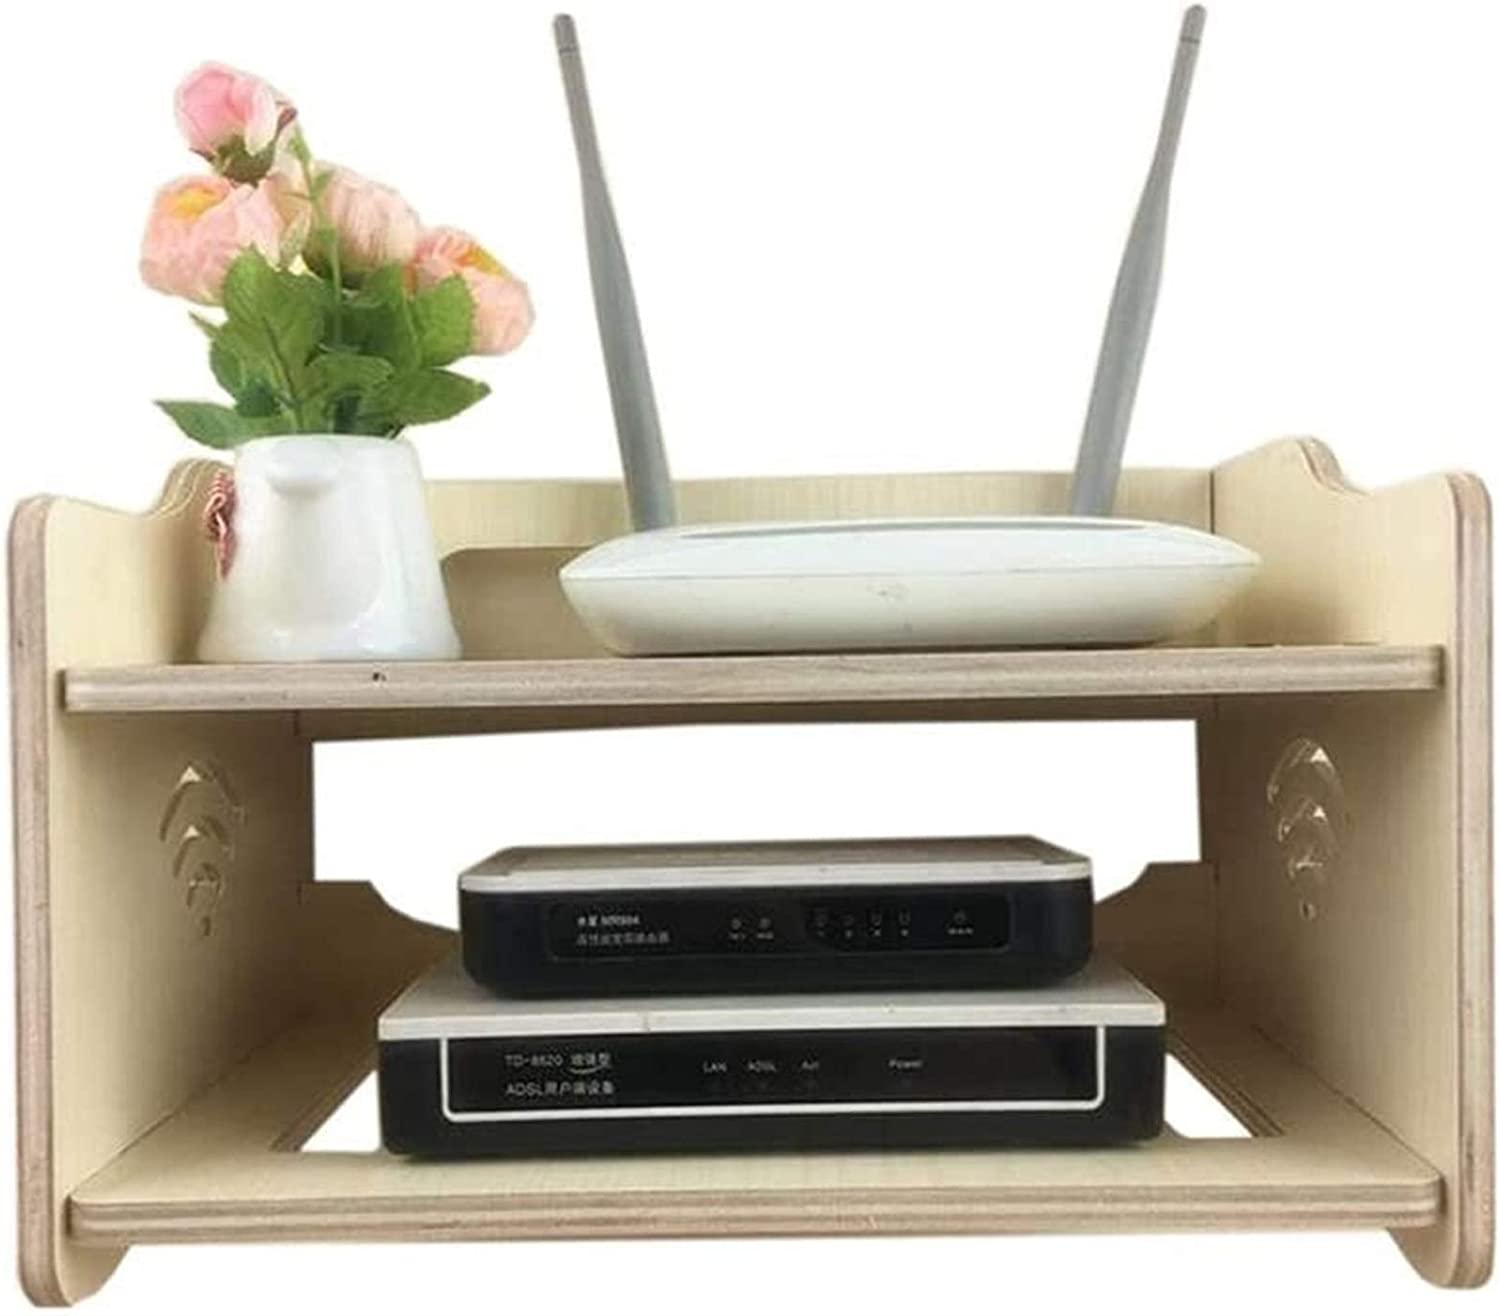 BECCYYLY Nashville-Davidson Mall Router Rack Shelves Multi-Function WiFi Storage Max 89% OFF